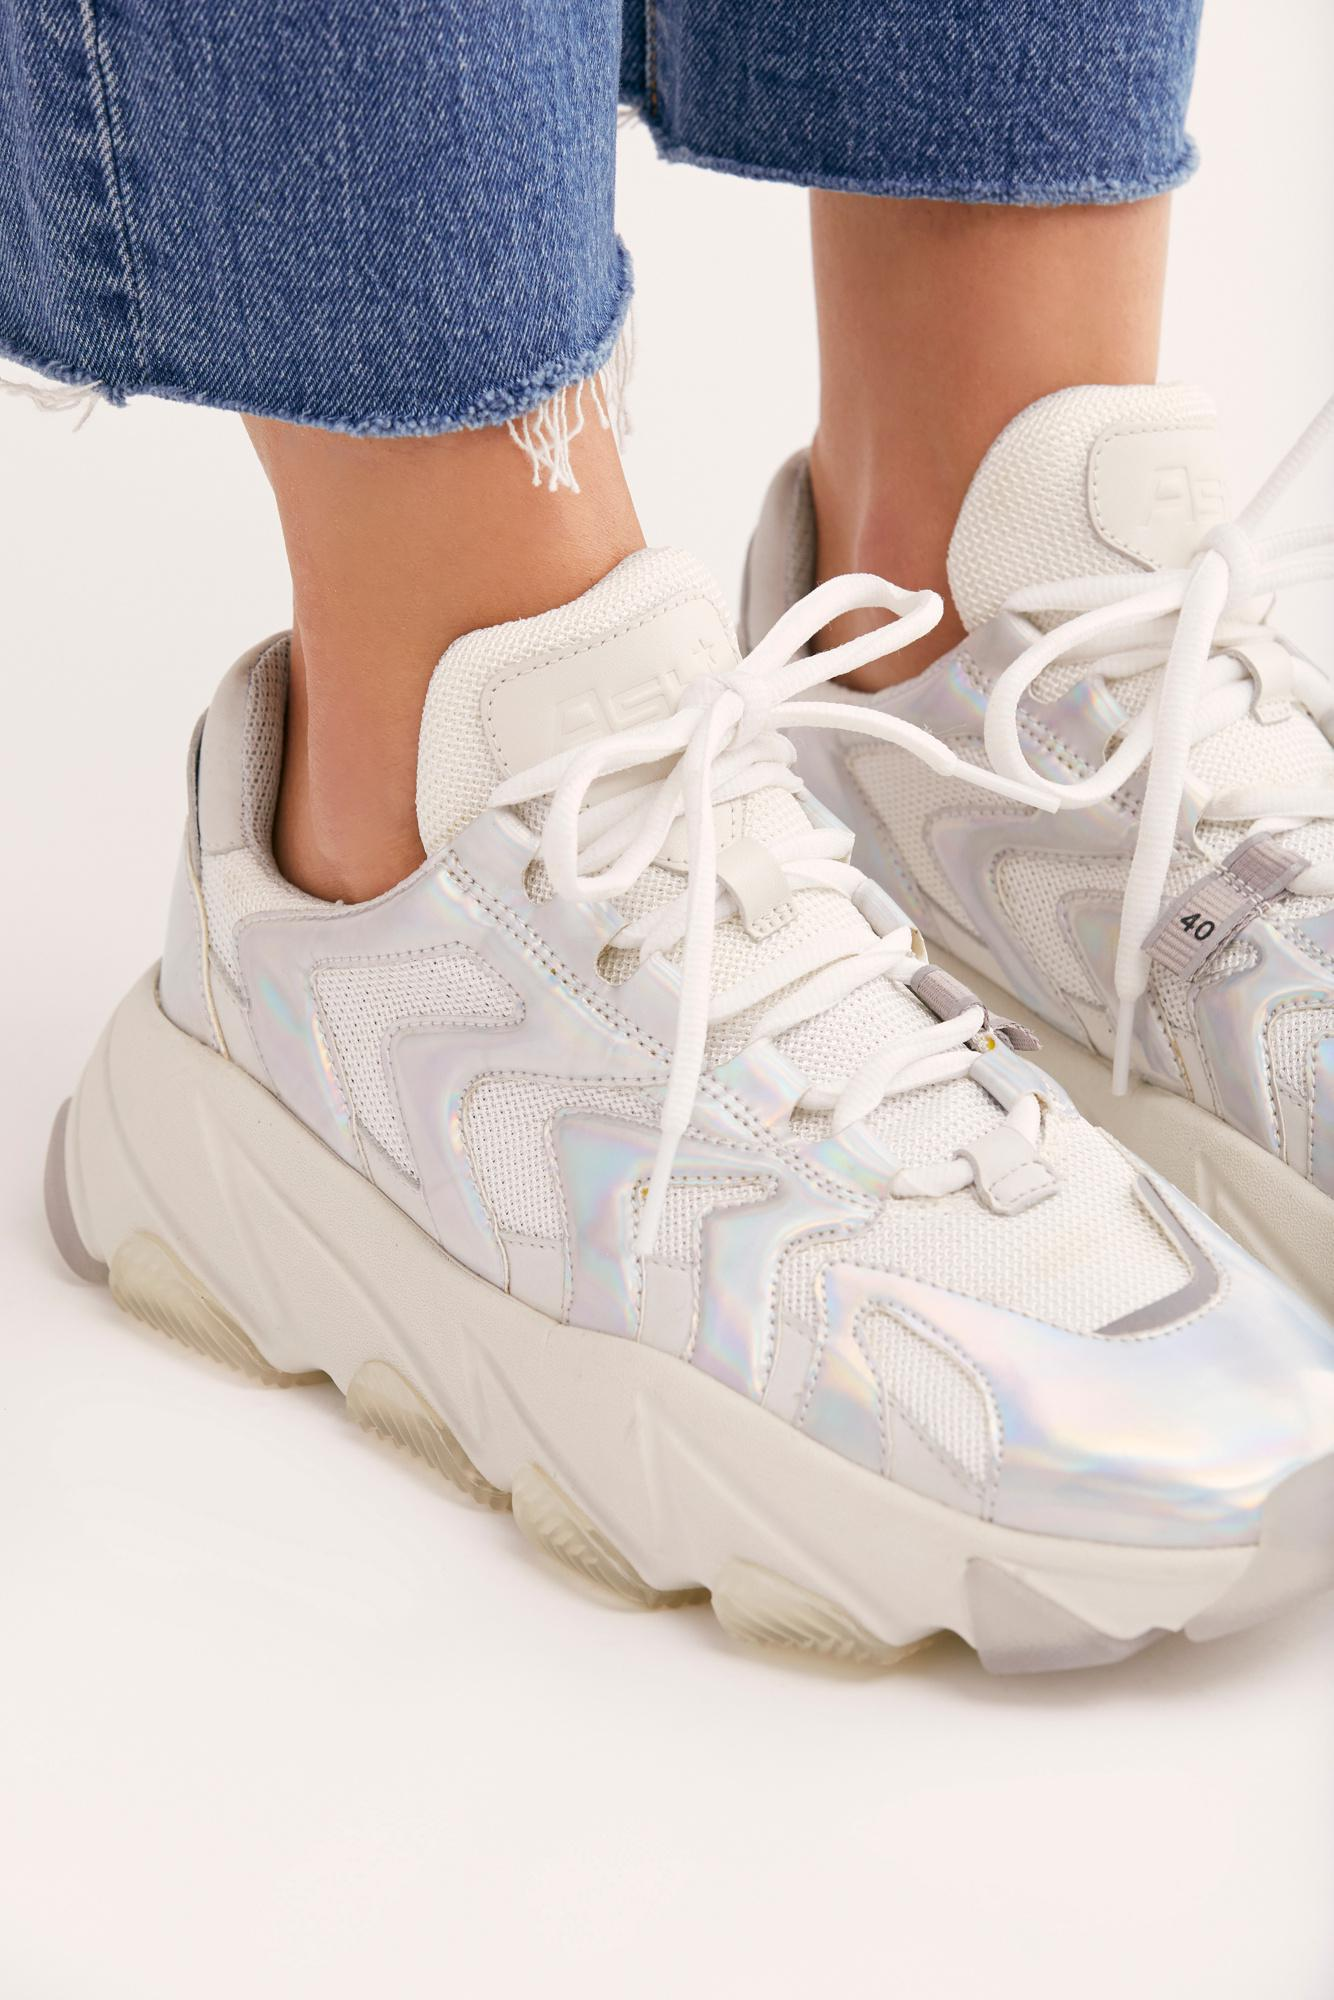 Free People Leather Ash Cosmic Silver